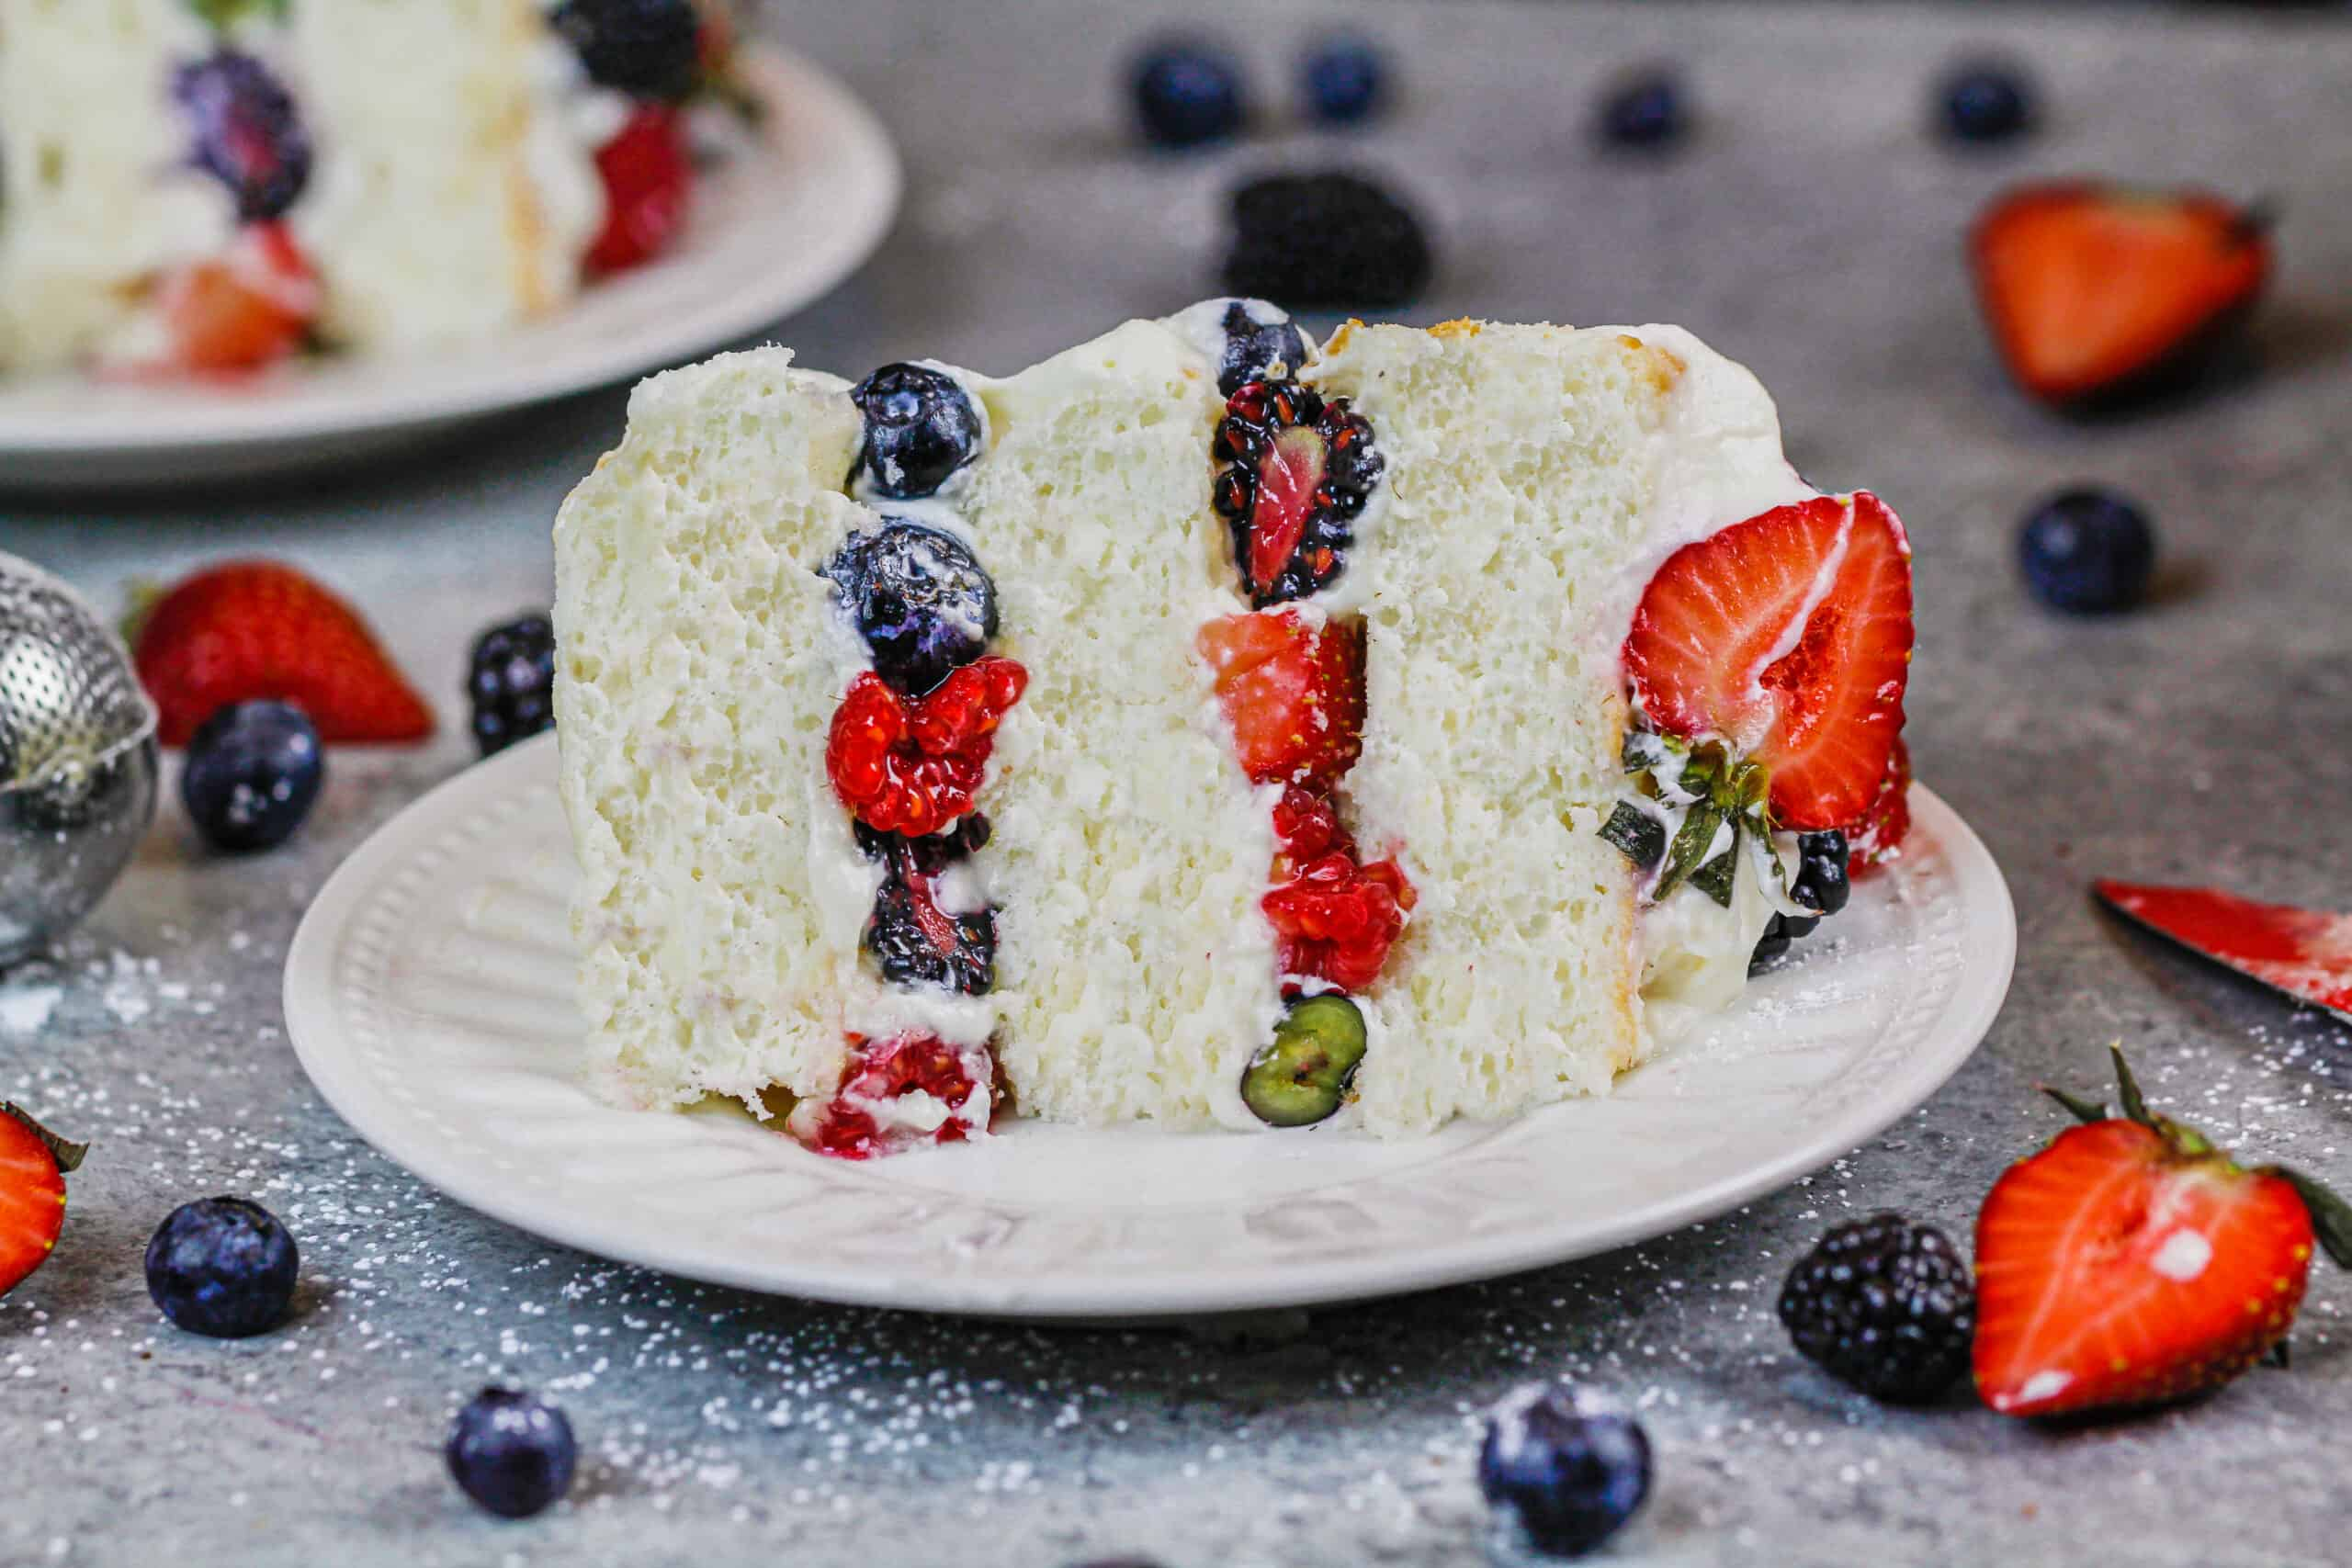 image of a slice of a layered angel food cake filled with berries and stabilized whipped cream